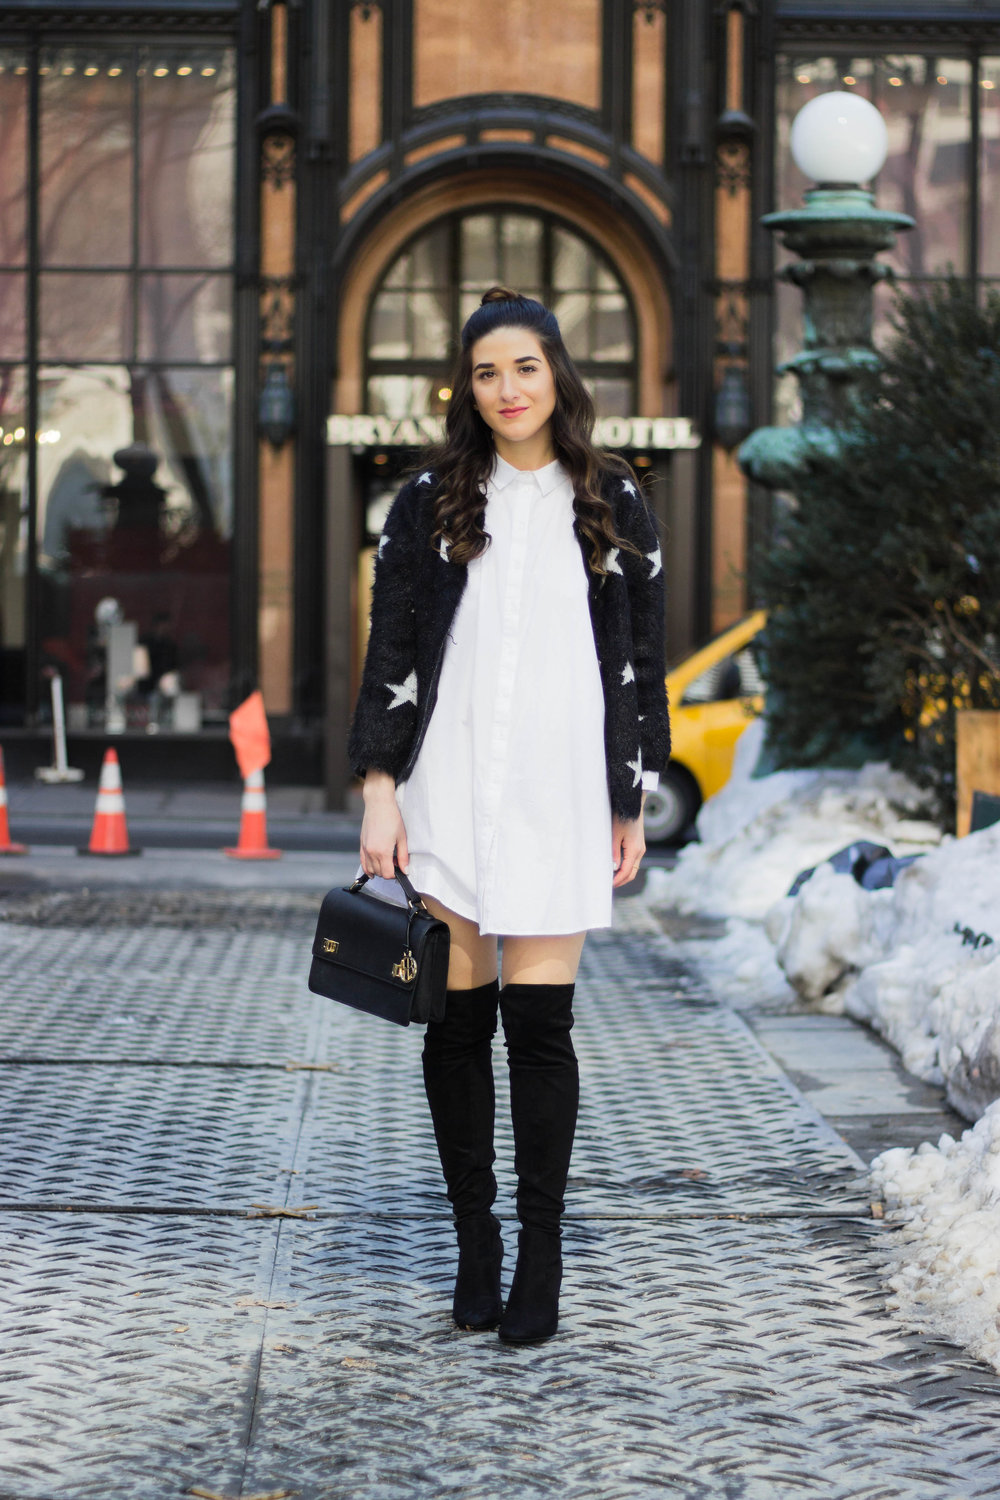 Trescool Star Jacket How NYC Changed My Style Esther Santer Fashion Blog NYC Street Style Blogger Outfit OOTD Trendy Henri Bendel Black Bag Over The Knee Boots Topknot Bun Women Girl Zara White Button Down Shirt Dress Shoes Purse Wearing Shopping Shop.jpg